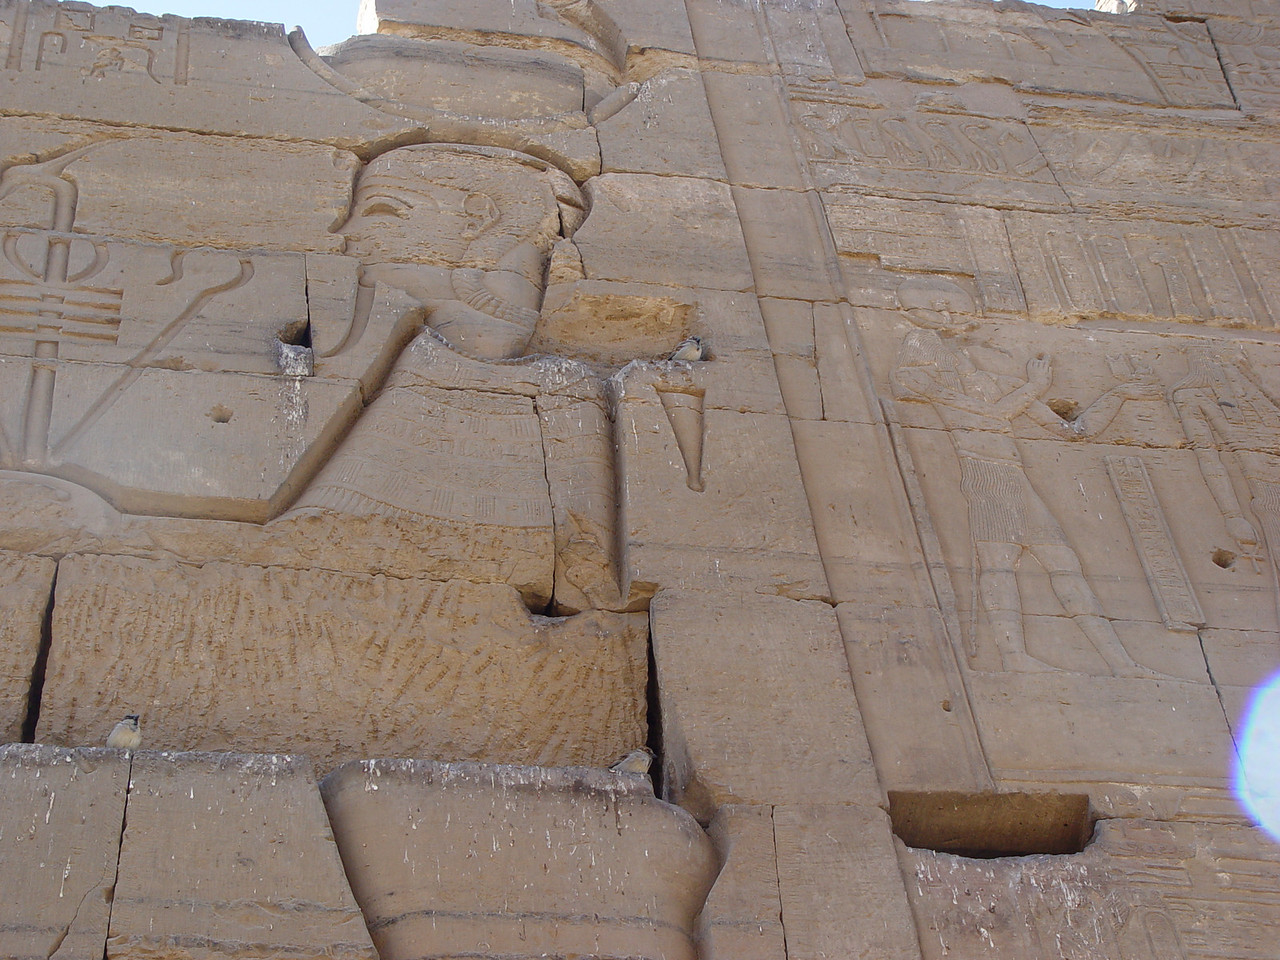 e) Some birds found a nesting placing in this carving of Ptah.